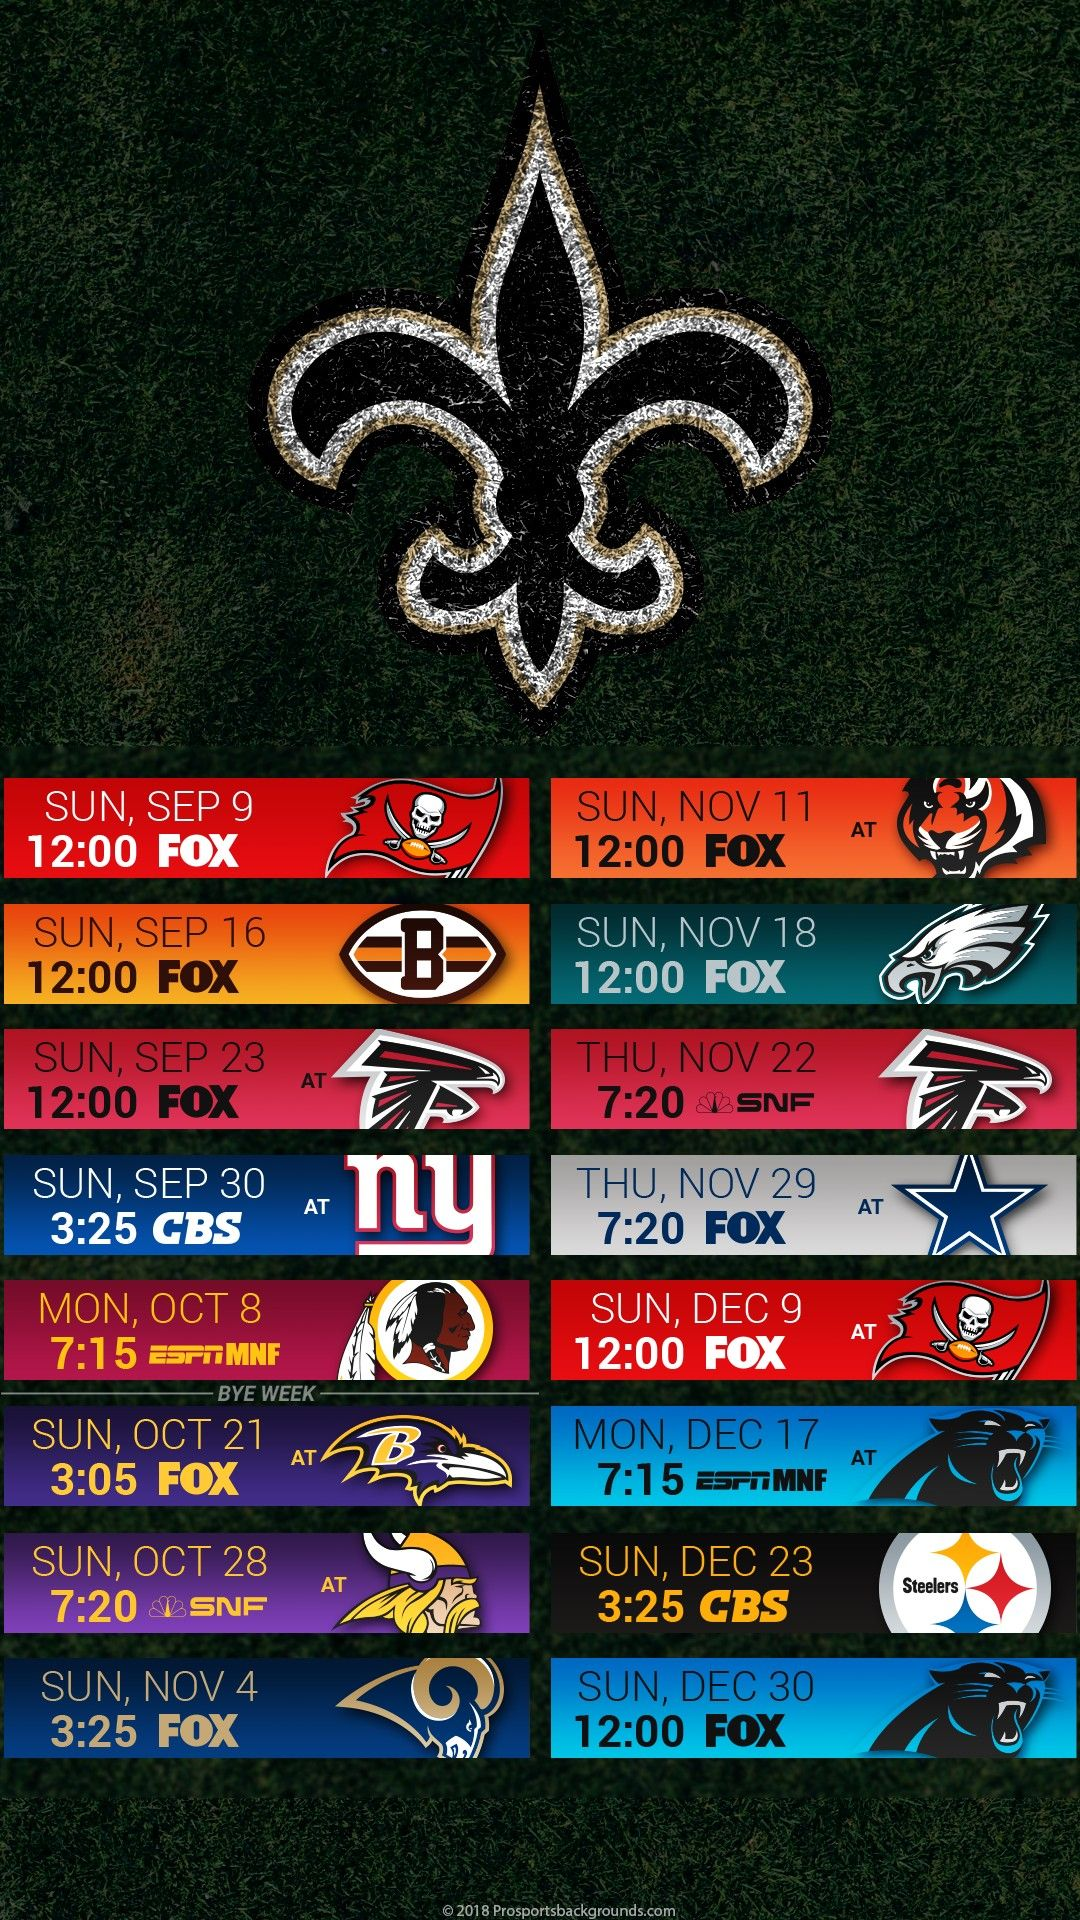 2018 New Orleans Saints I-Phone & Android Wallpaper Schedule. #Whodat